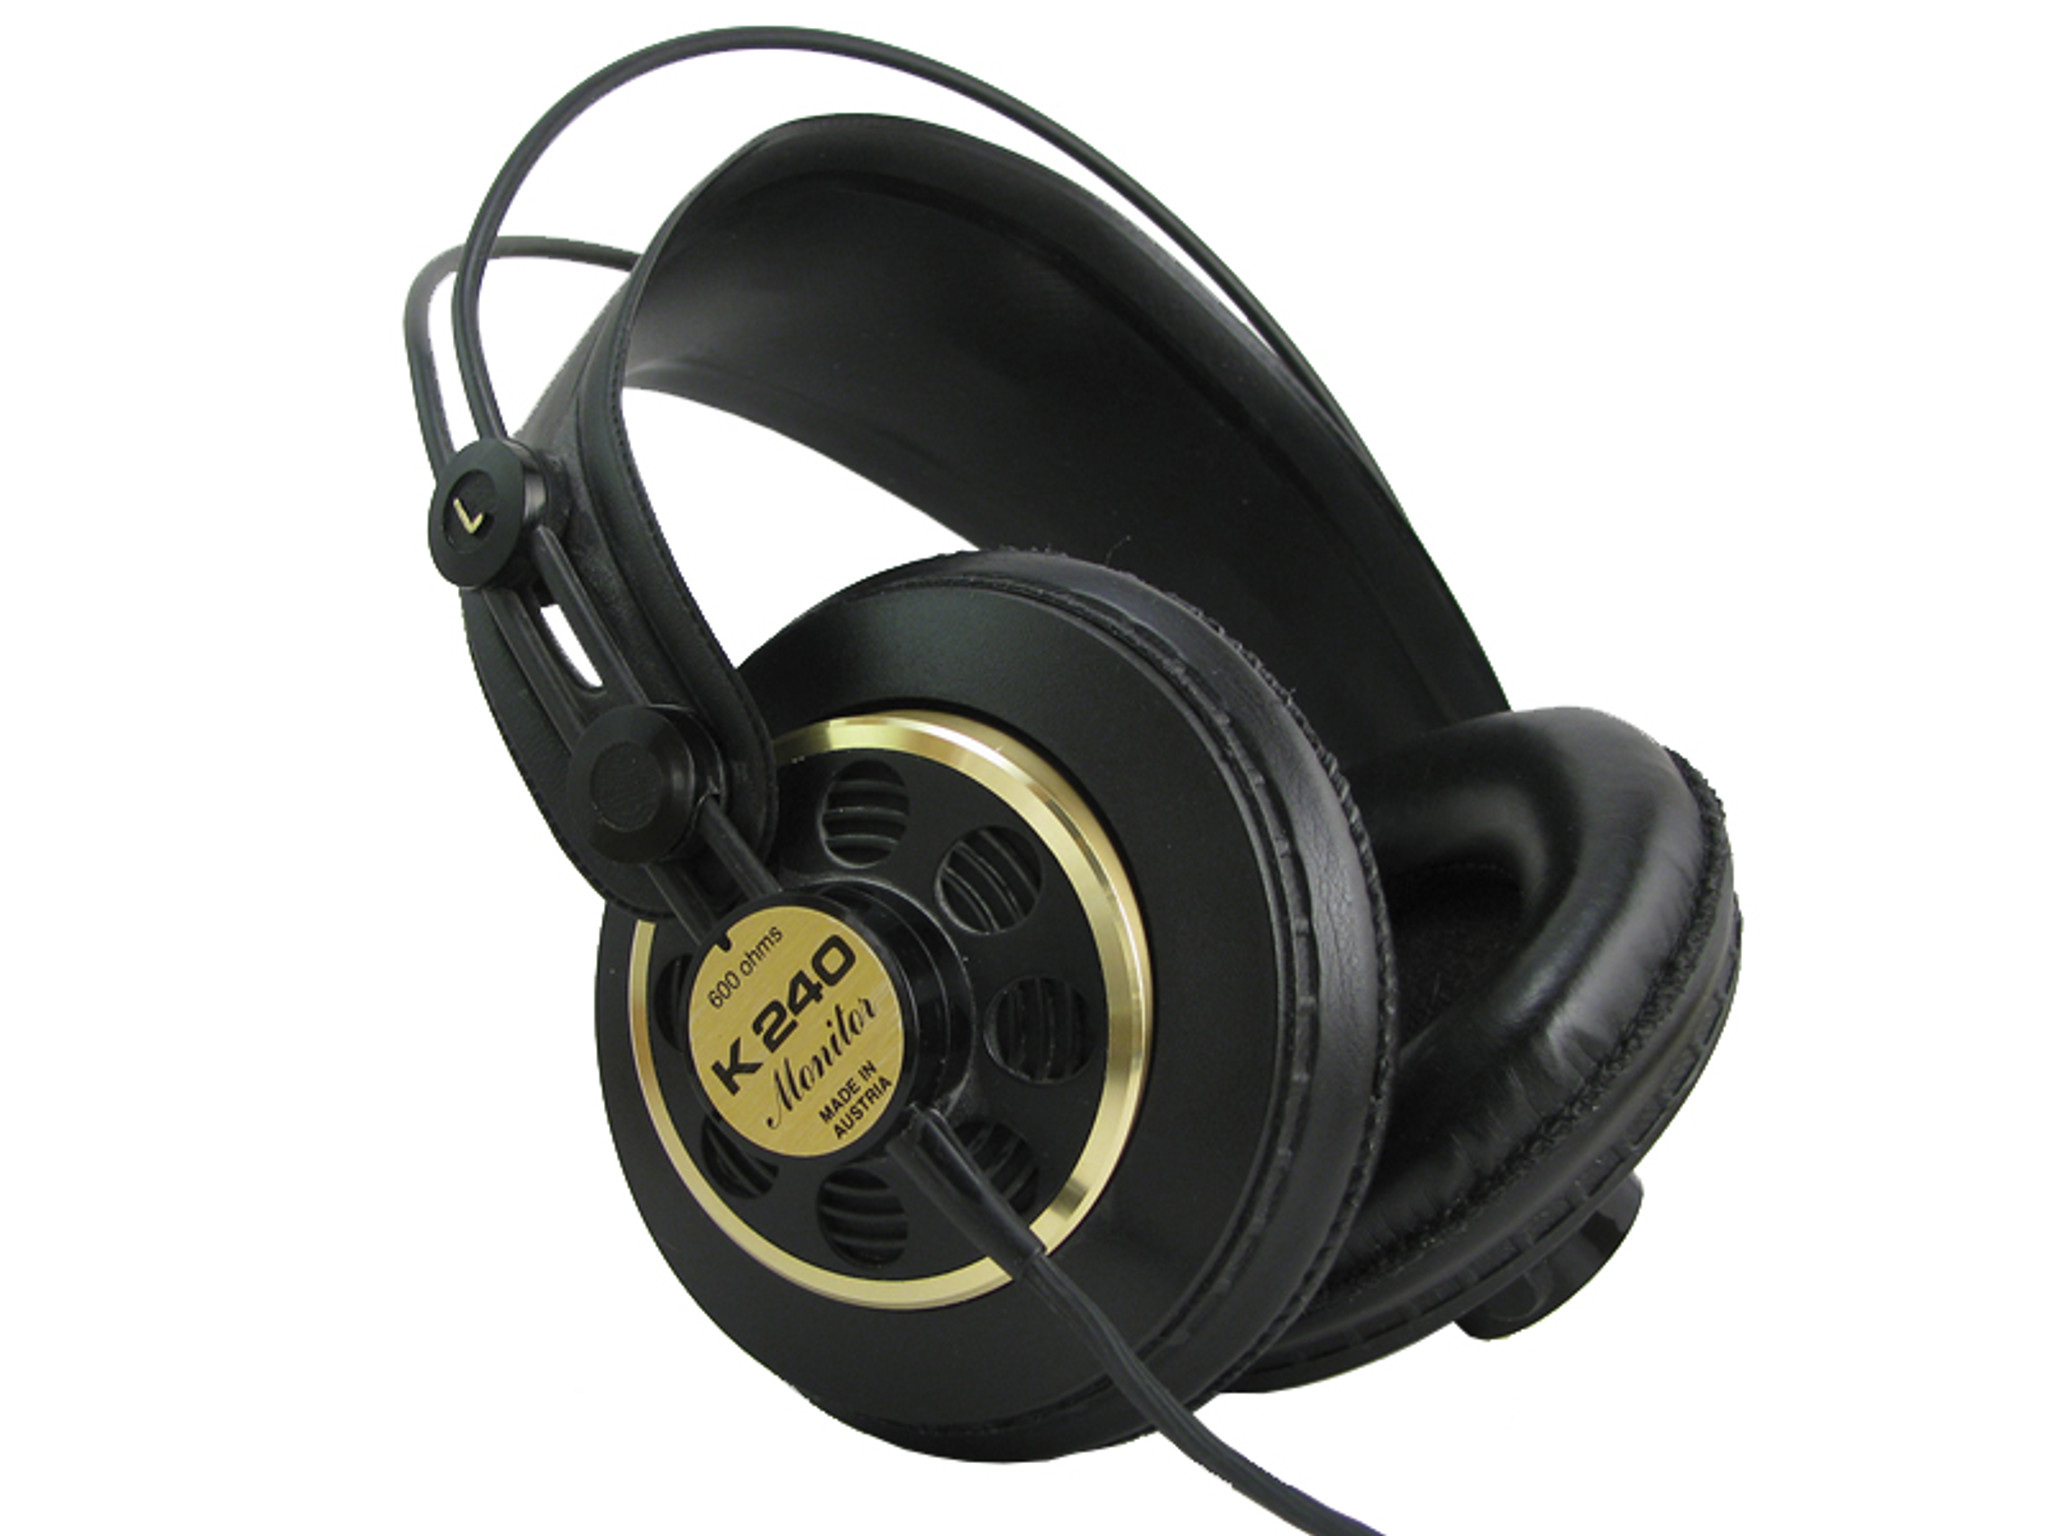 special section save up to 80% wholesale sales AKG K240